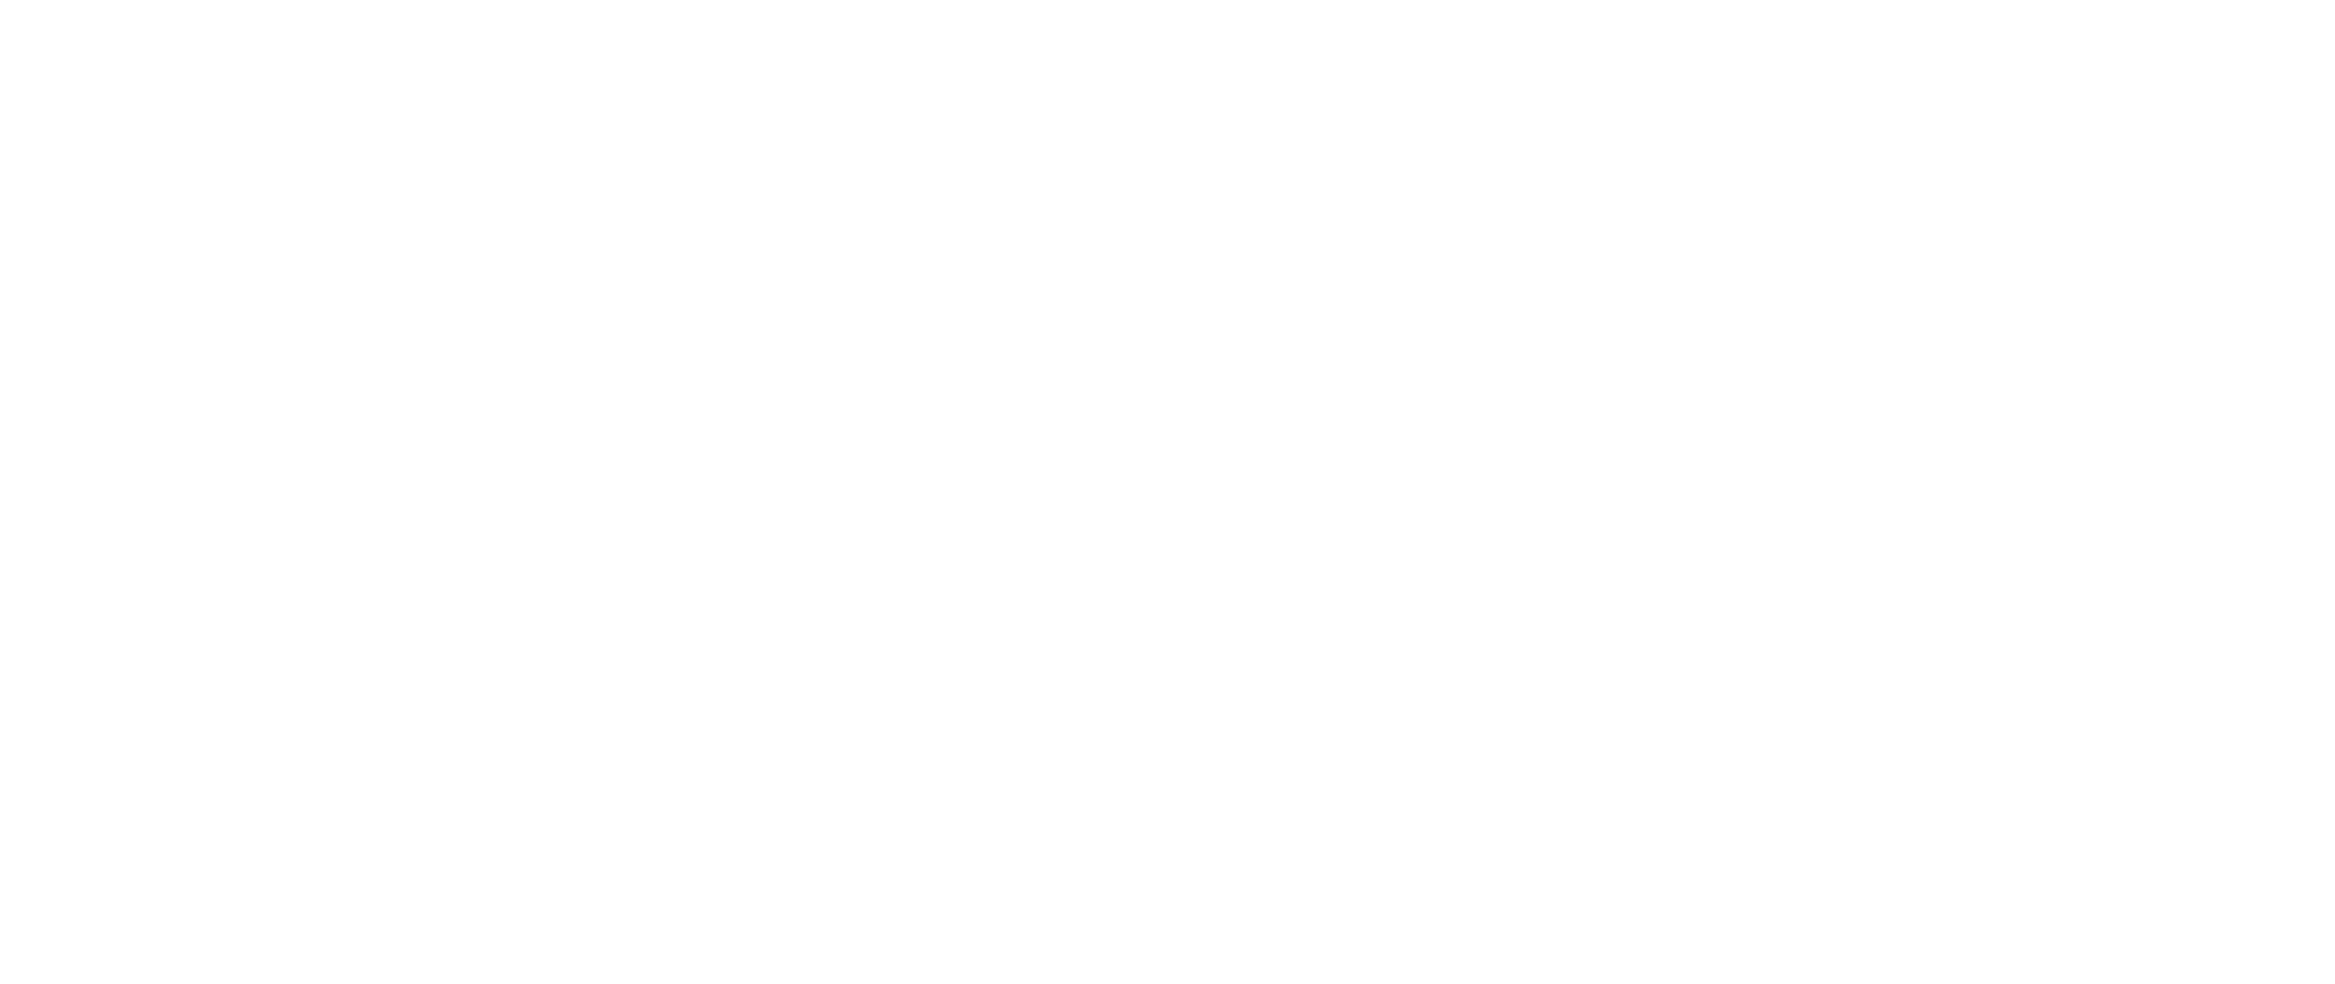 TM Trademark Collection by Wyndham Logo